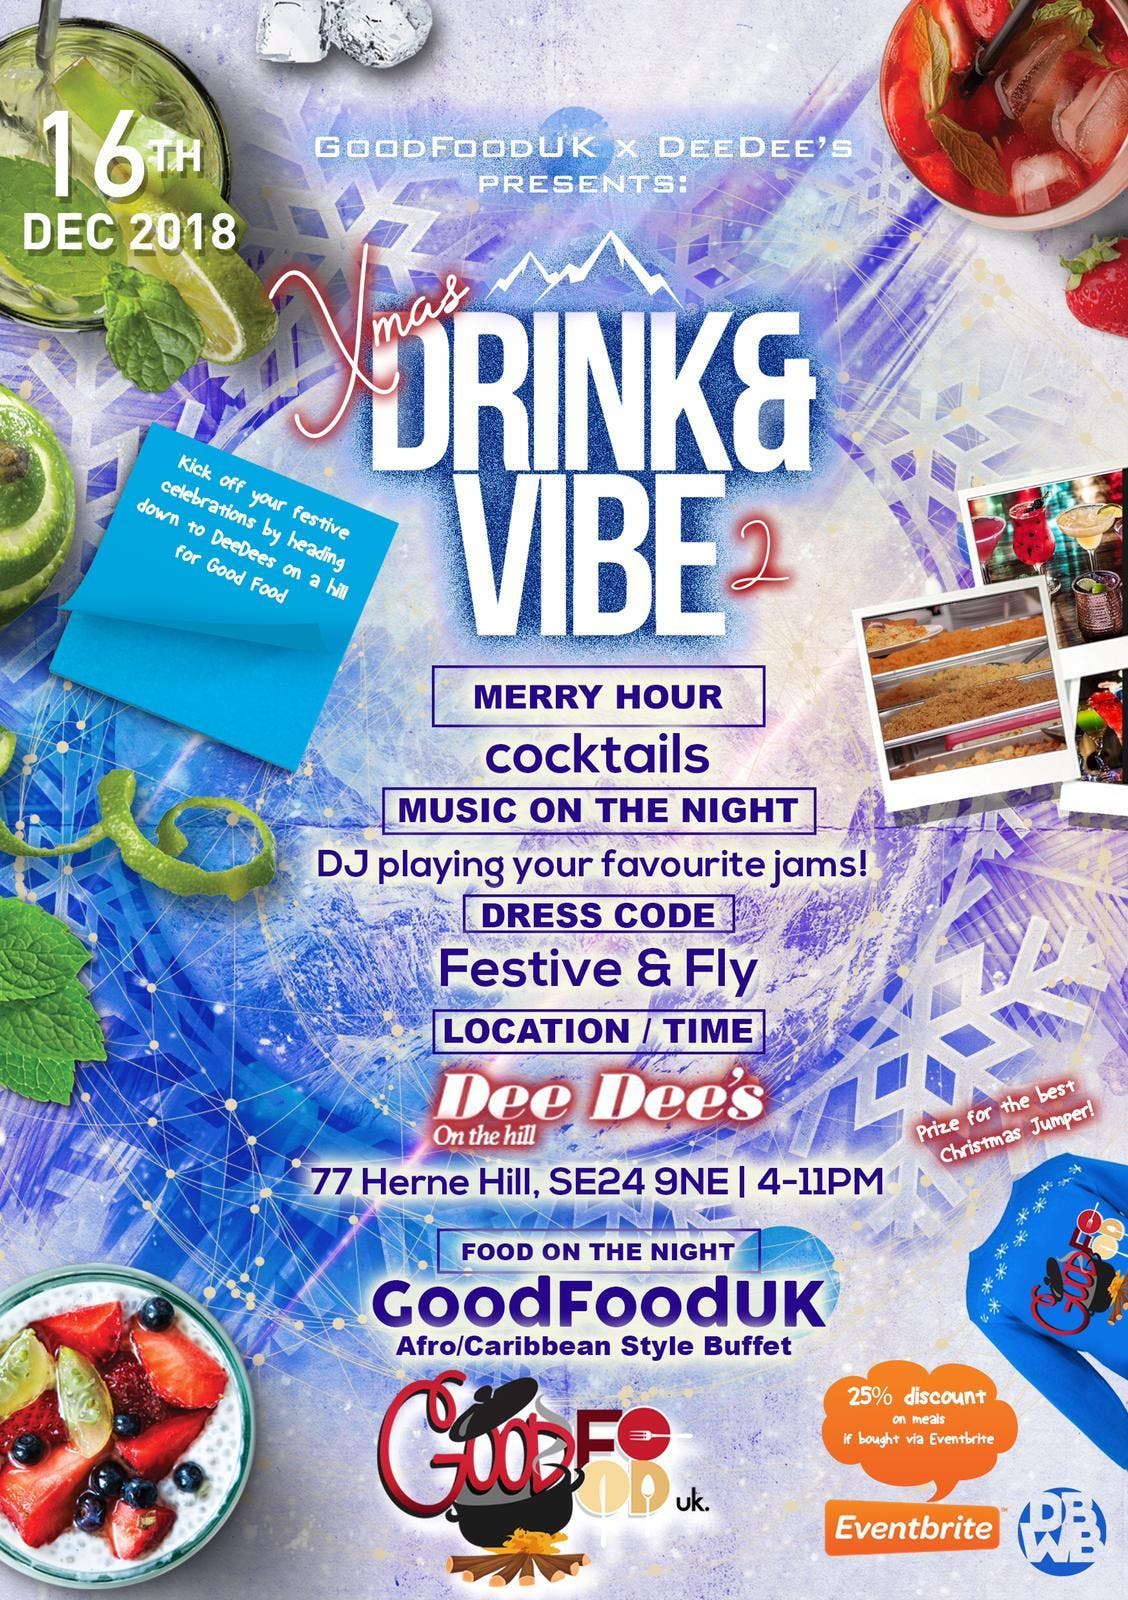 GOODFOOD DRINK&VIBE @ DEEDEES's ON THE HILL.